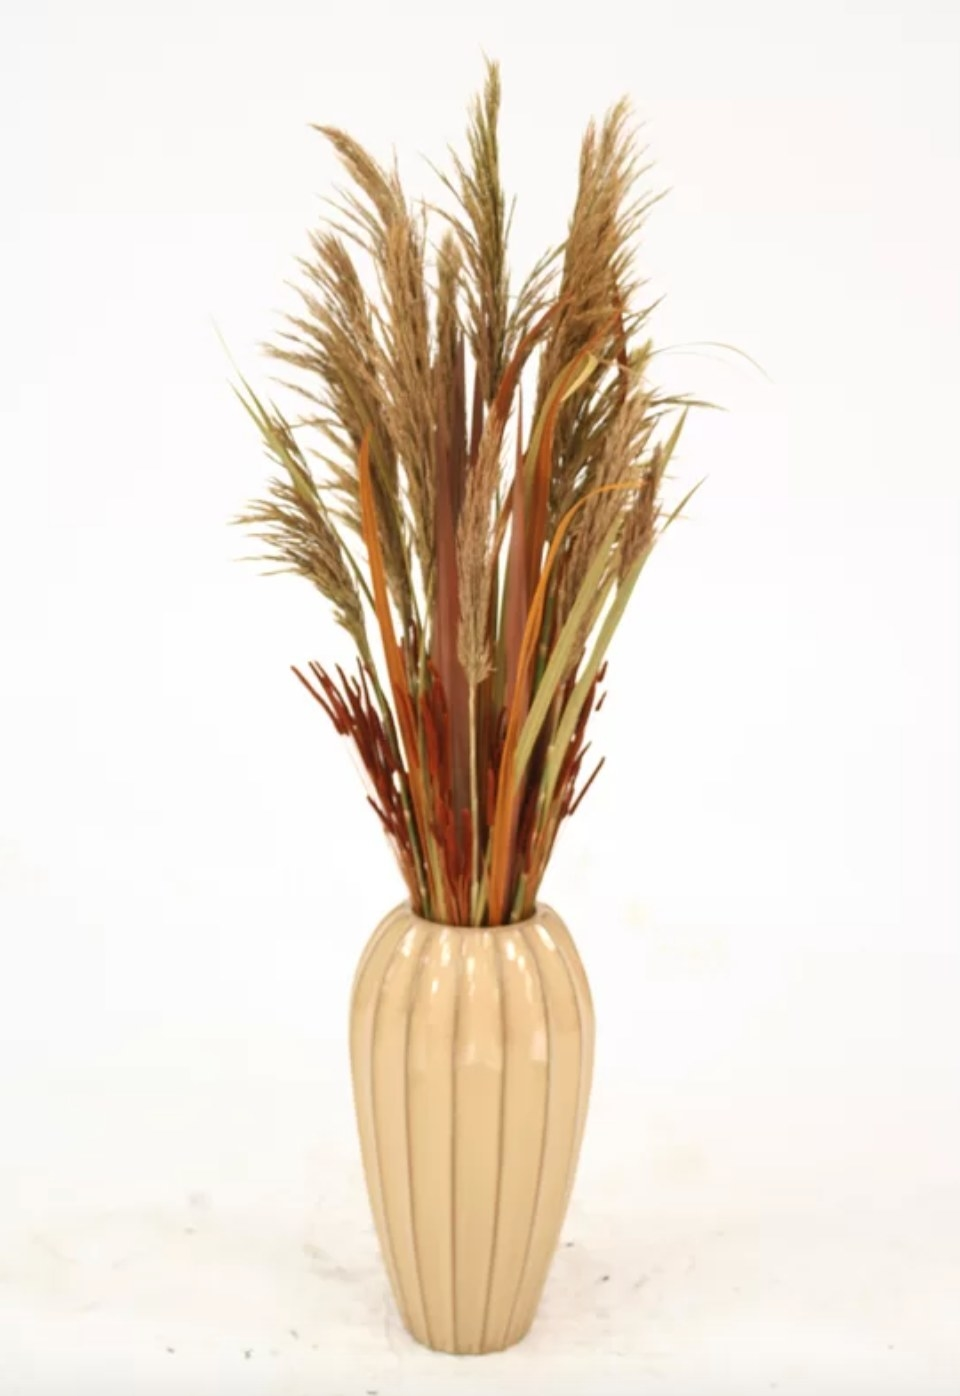 The dried grass plant in beautiful fall colors in a beige vase